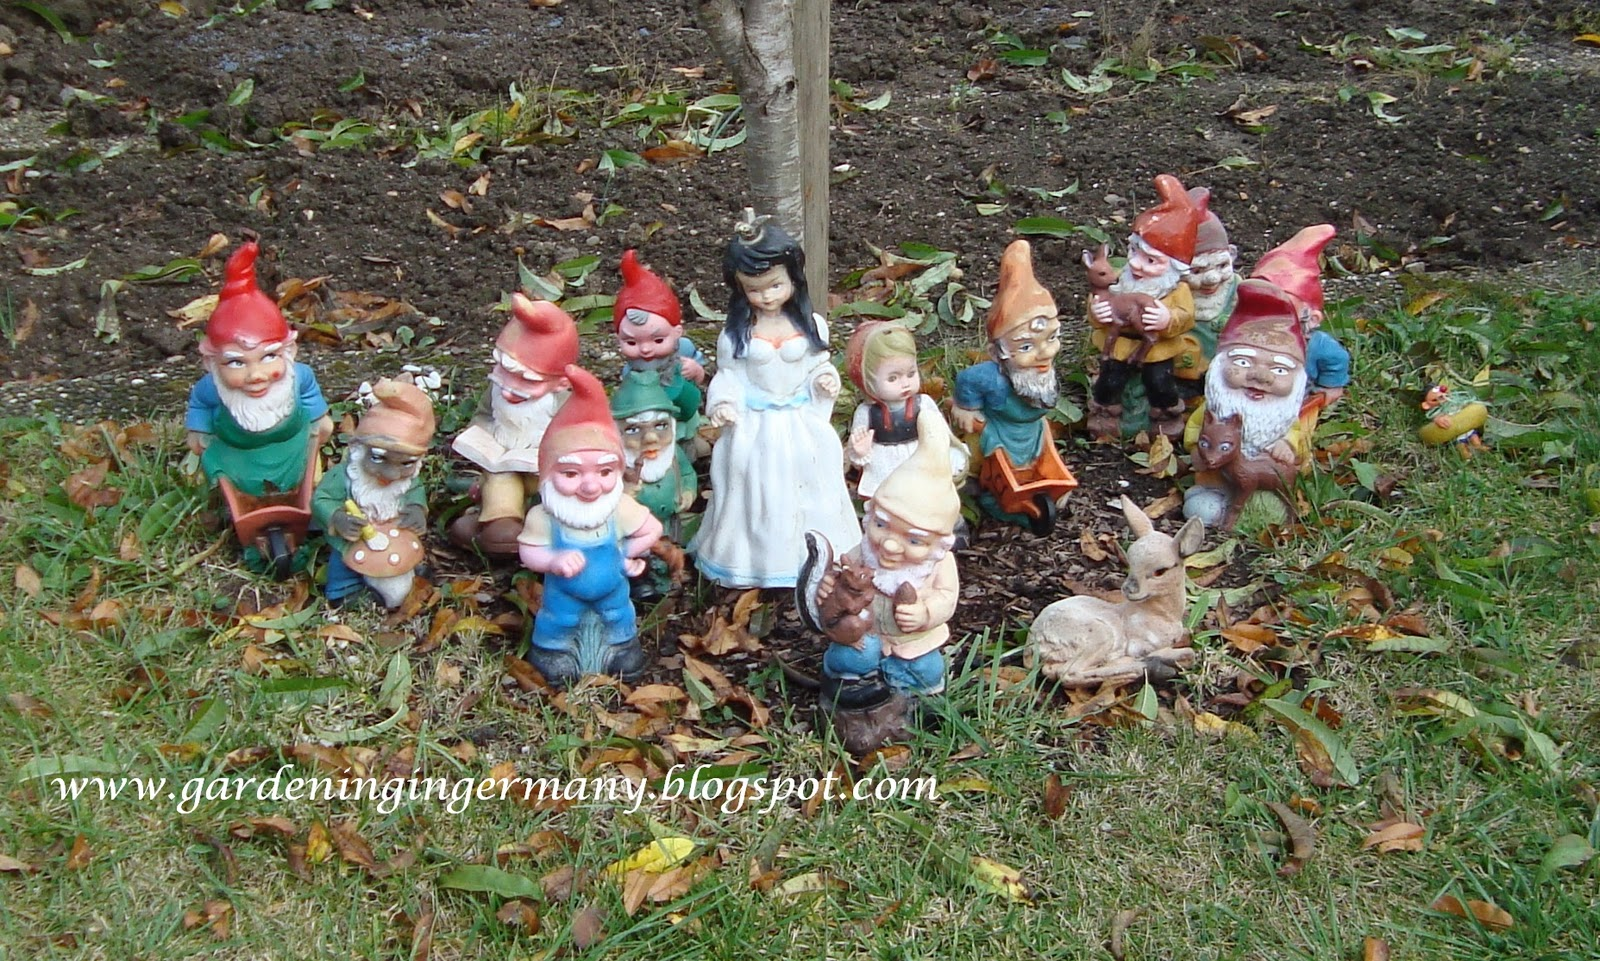 Gnome In Garden: Gardening In Mannheim, Germany: A Gnome's Tale Of